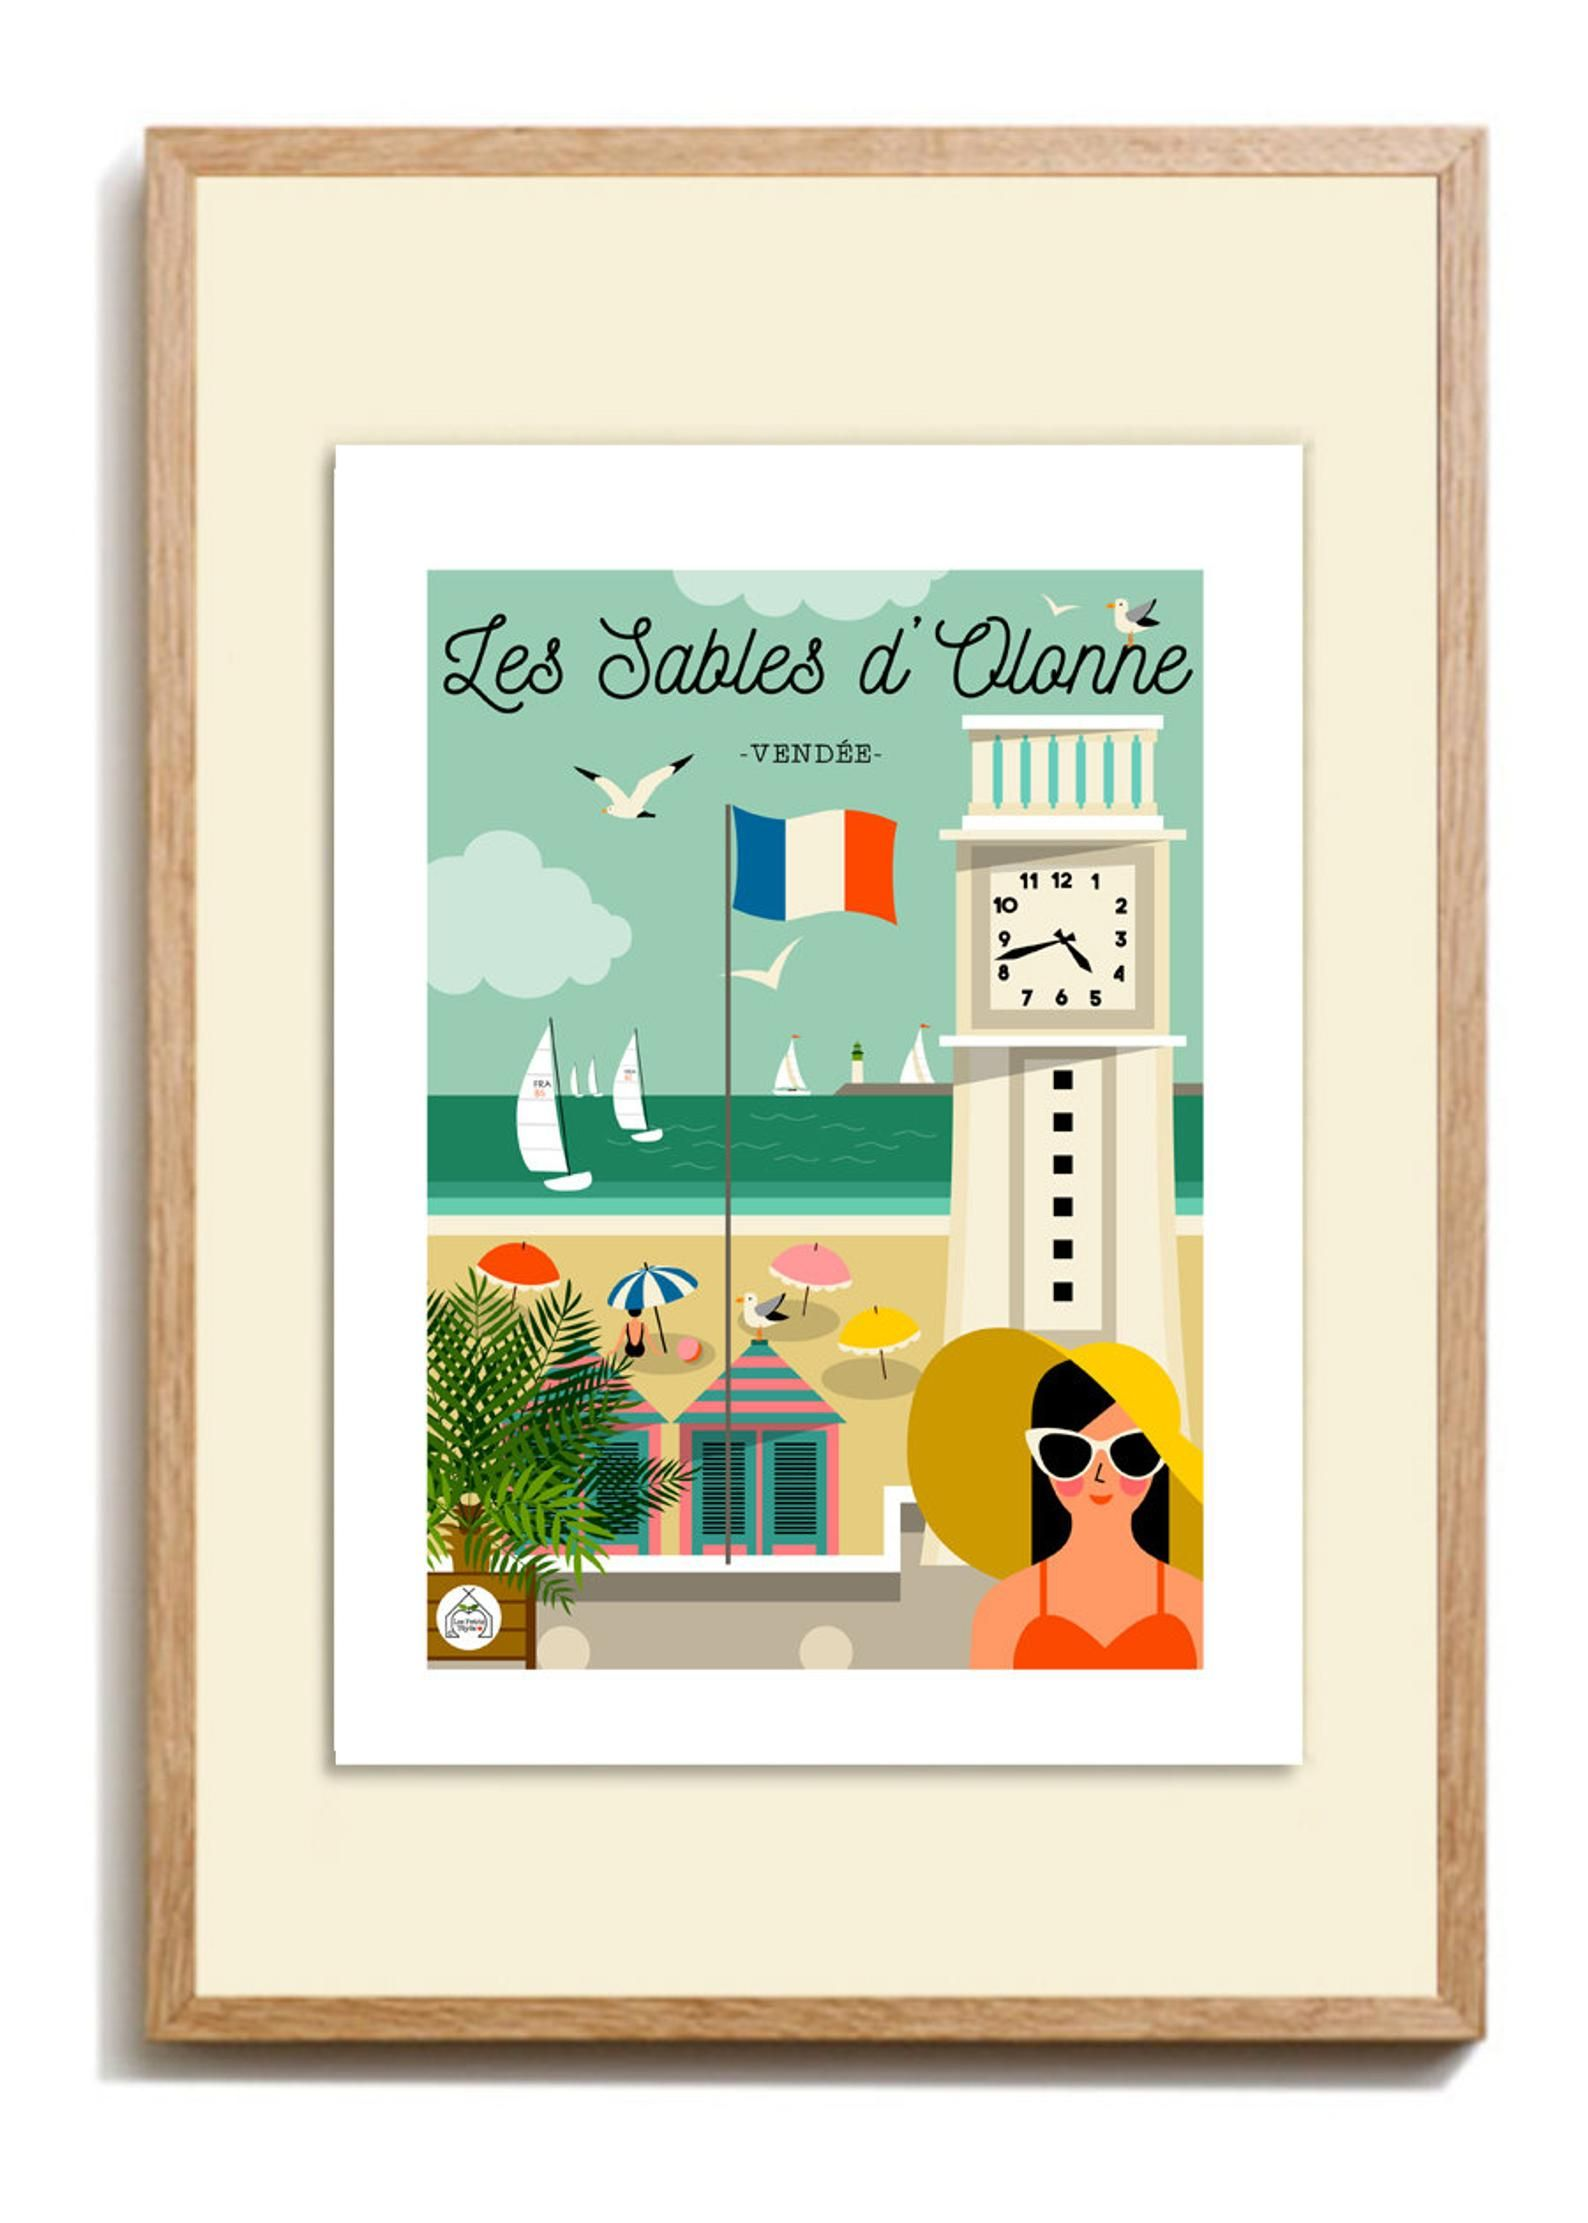 30x40cm the sands of olonne vendee